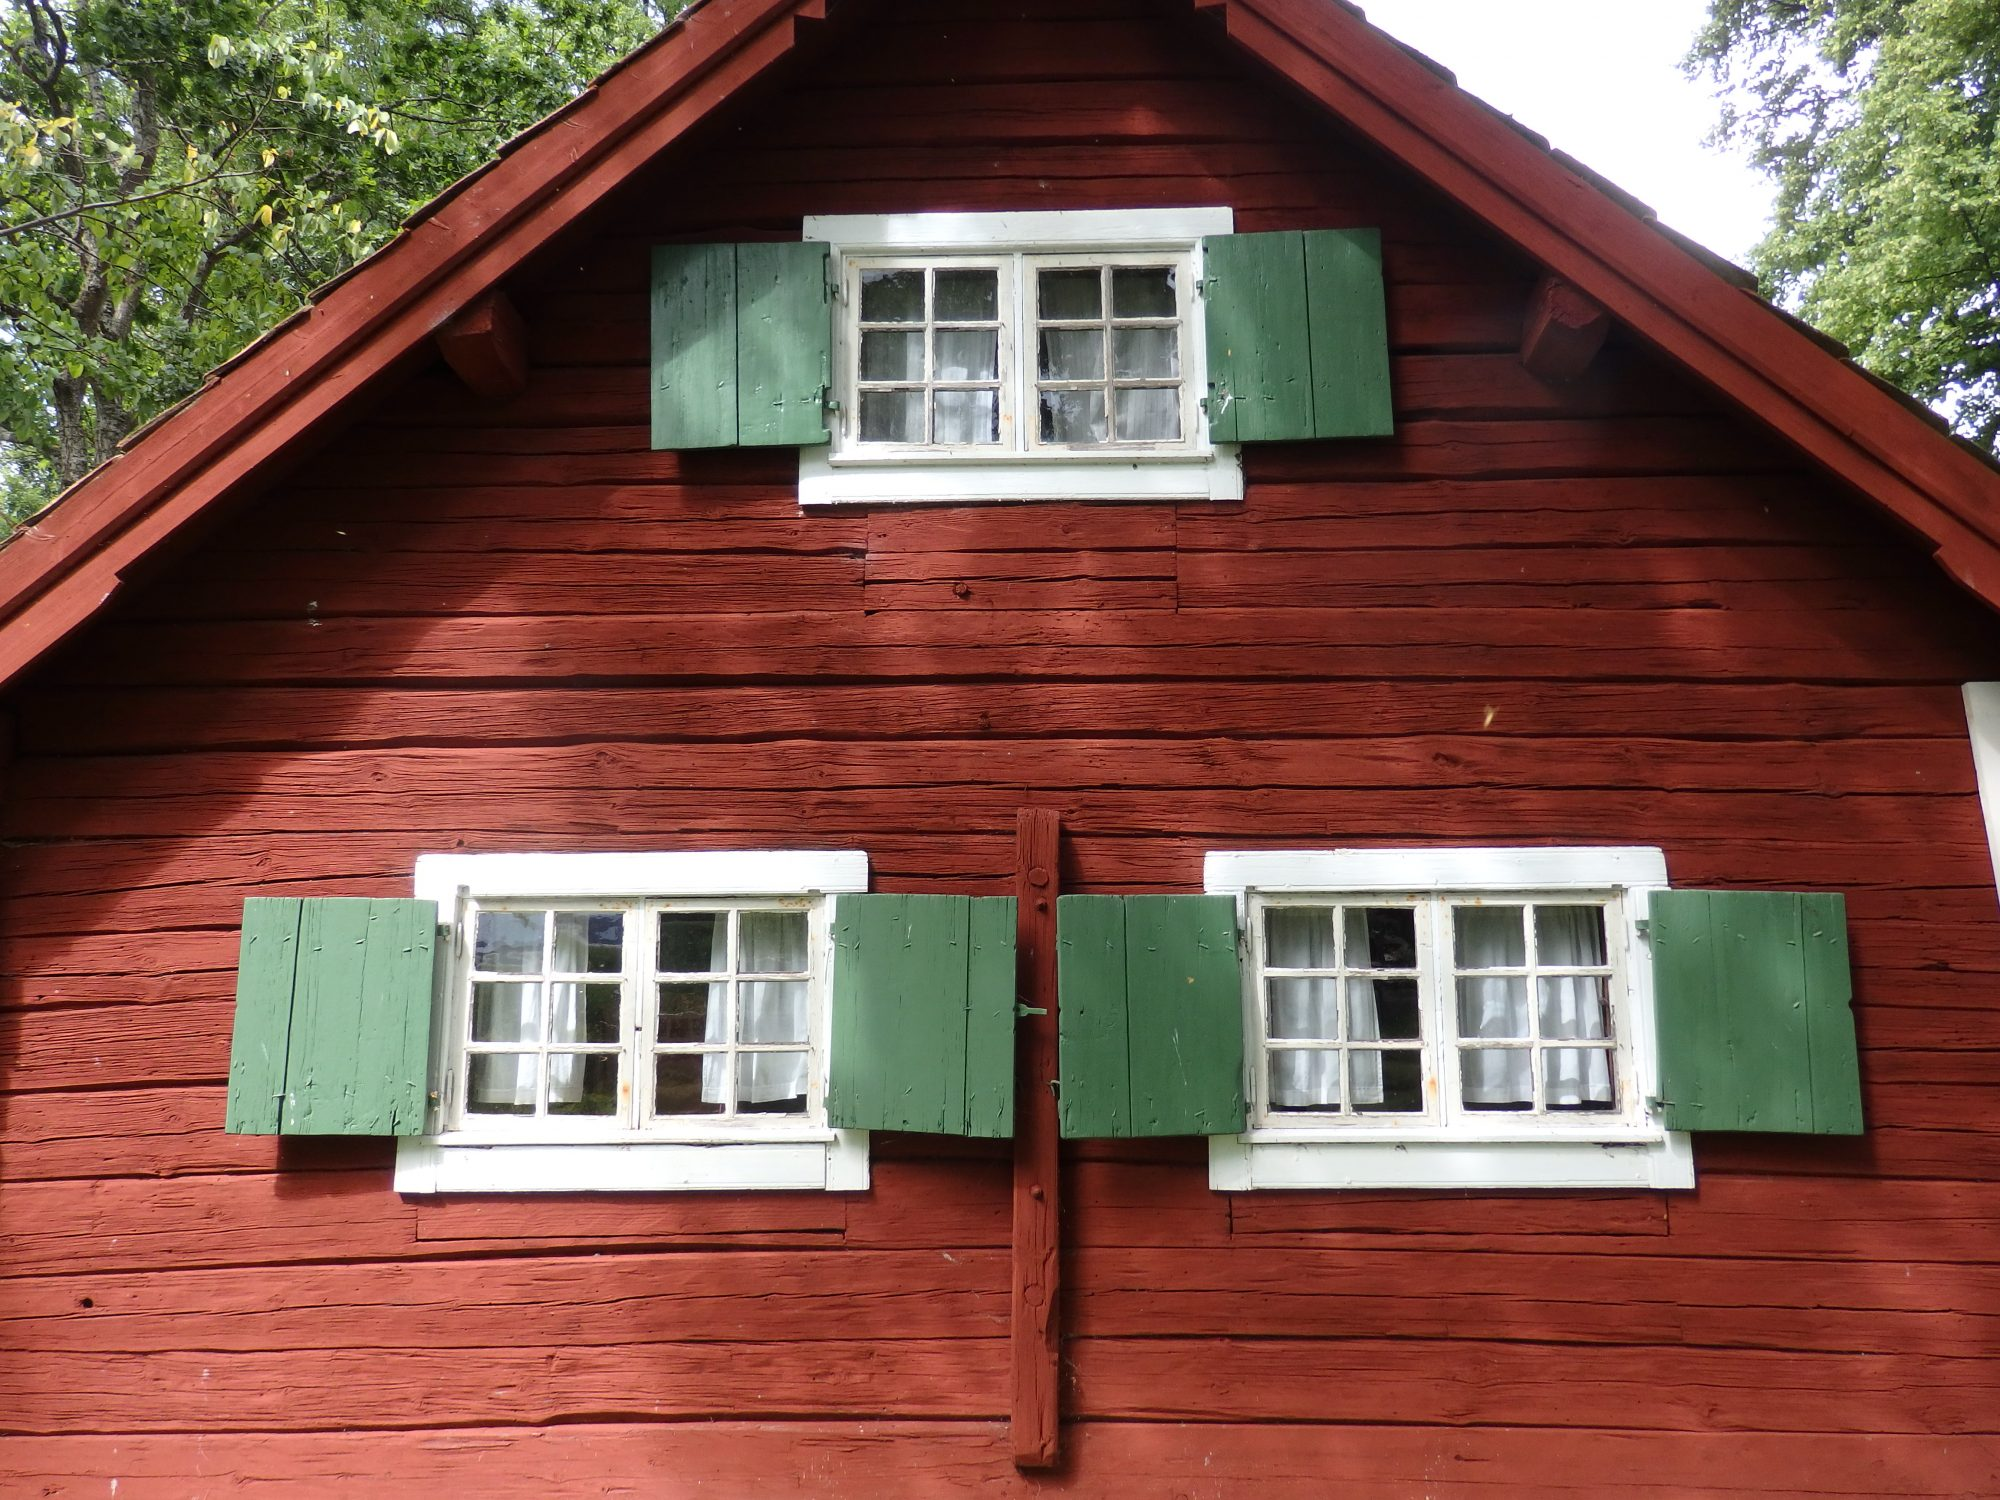 one of the historical buildings added to the Julita estate, Sweden